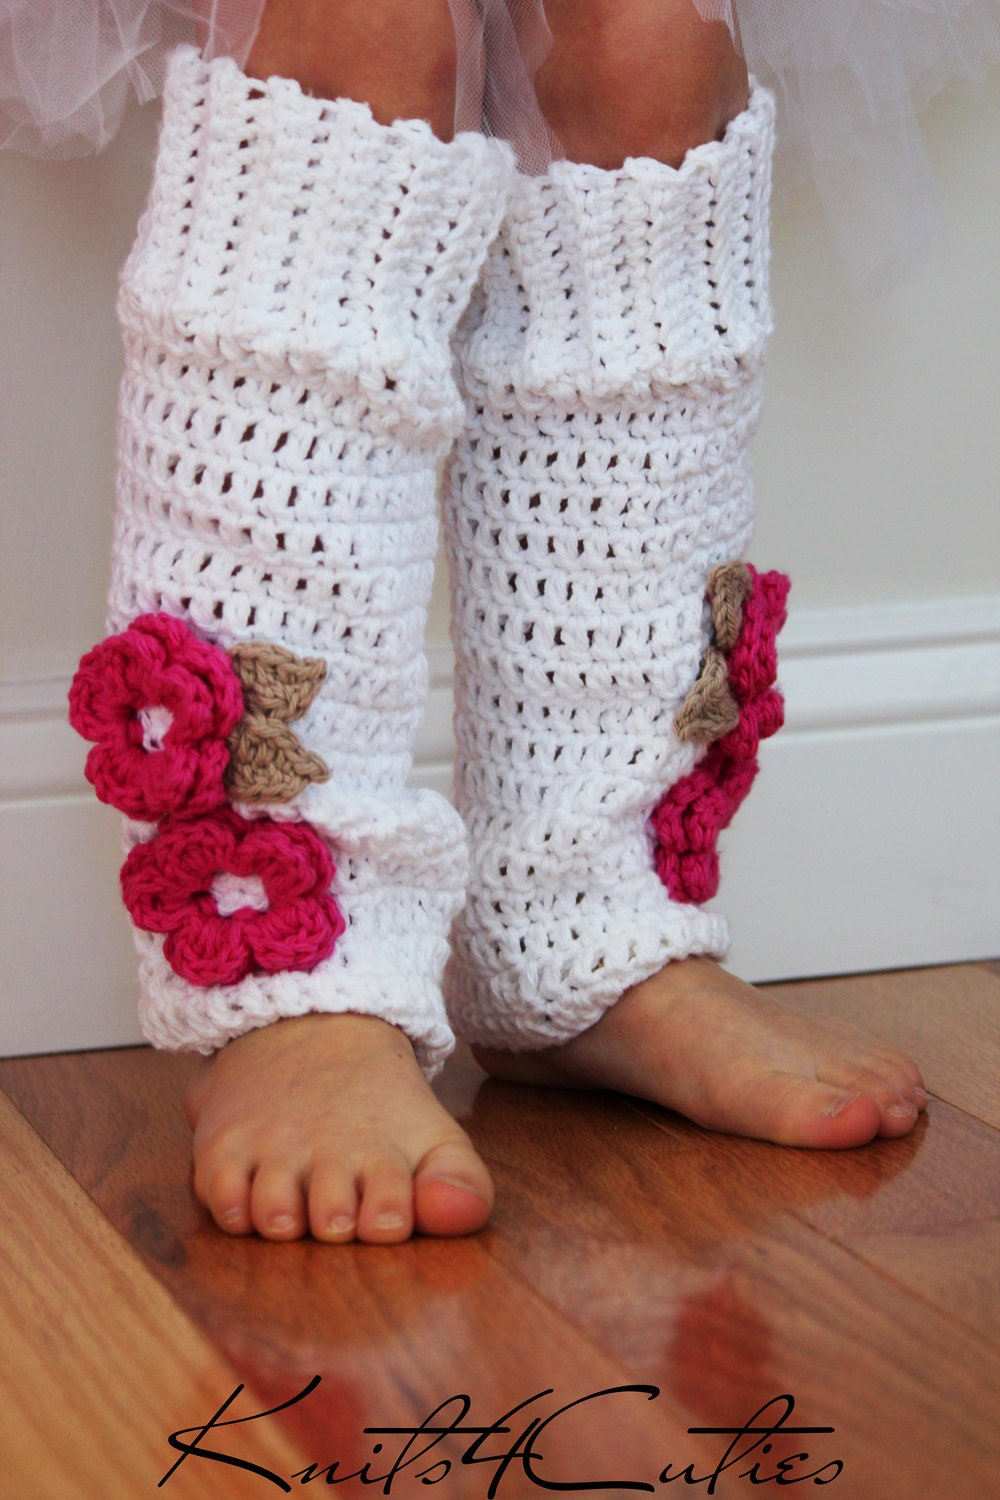 These leg warmers knit up fast and are cute to boot–a great addition to your little one's dance ensemble or adorably stylish winter outfit! They're also cute when flipped upside down and tucked into boots with the ruffle peeking out the tops.